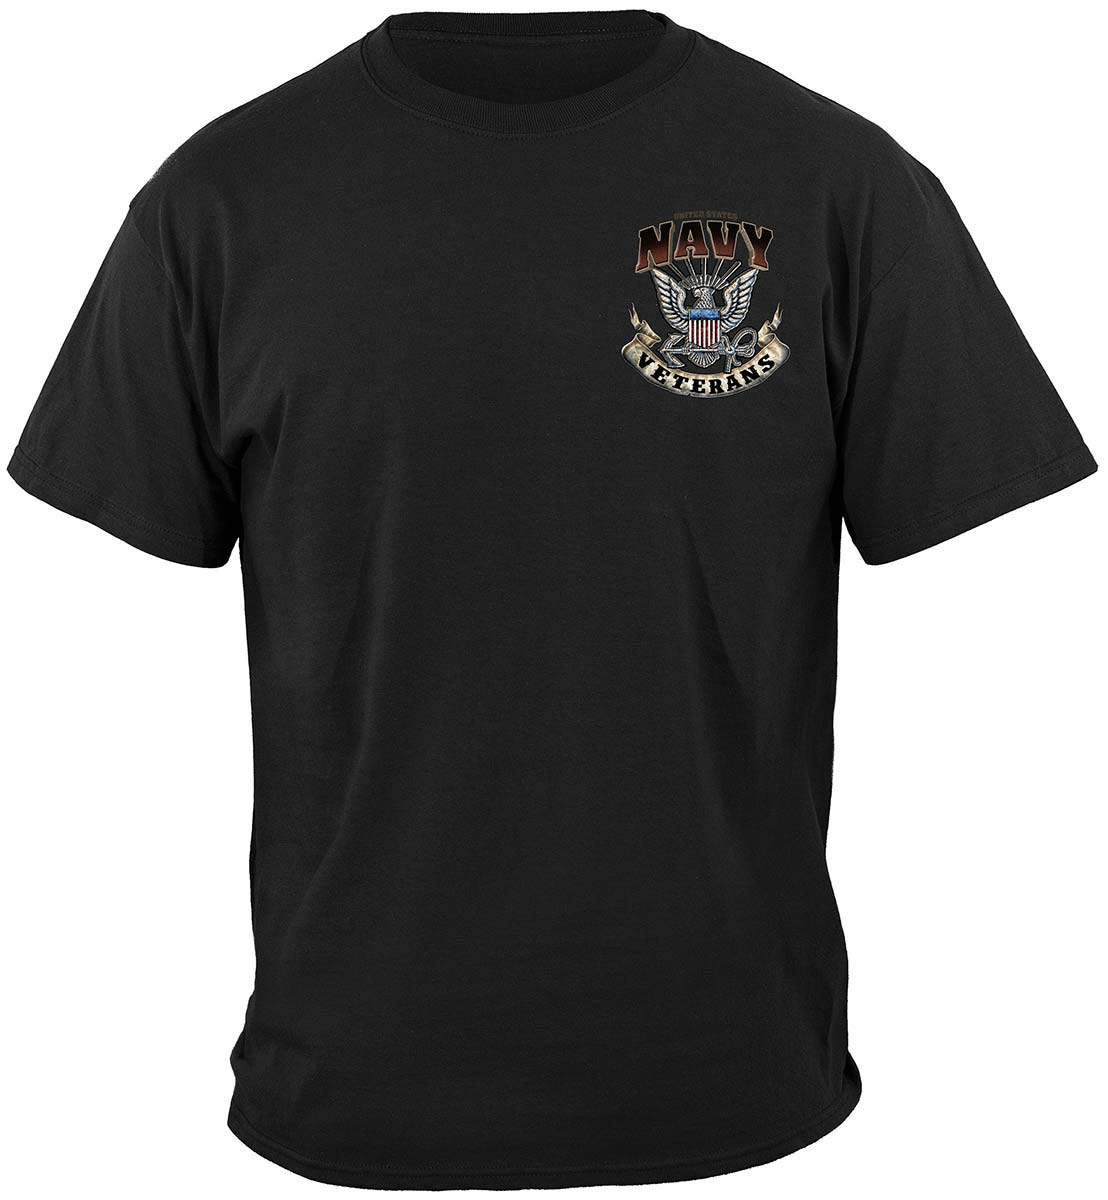 Navy Proud To Have Served Premium Long Sleeves